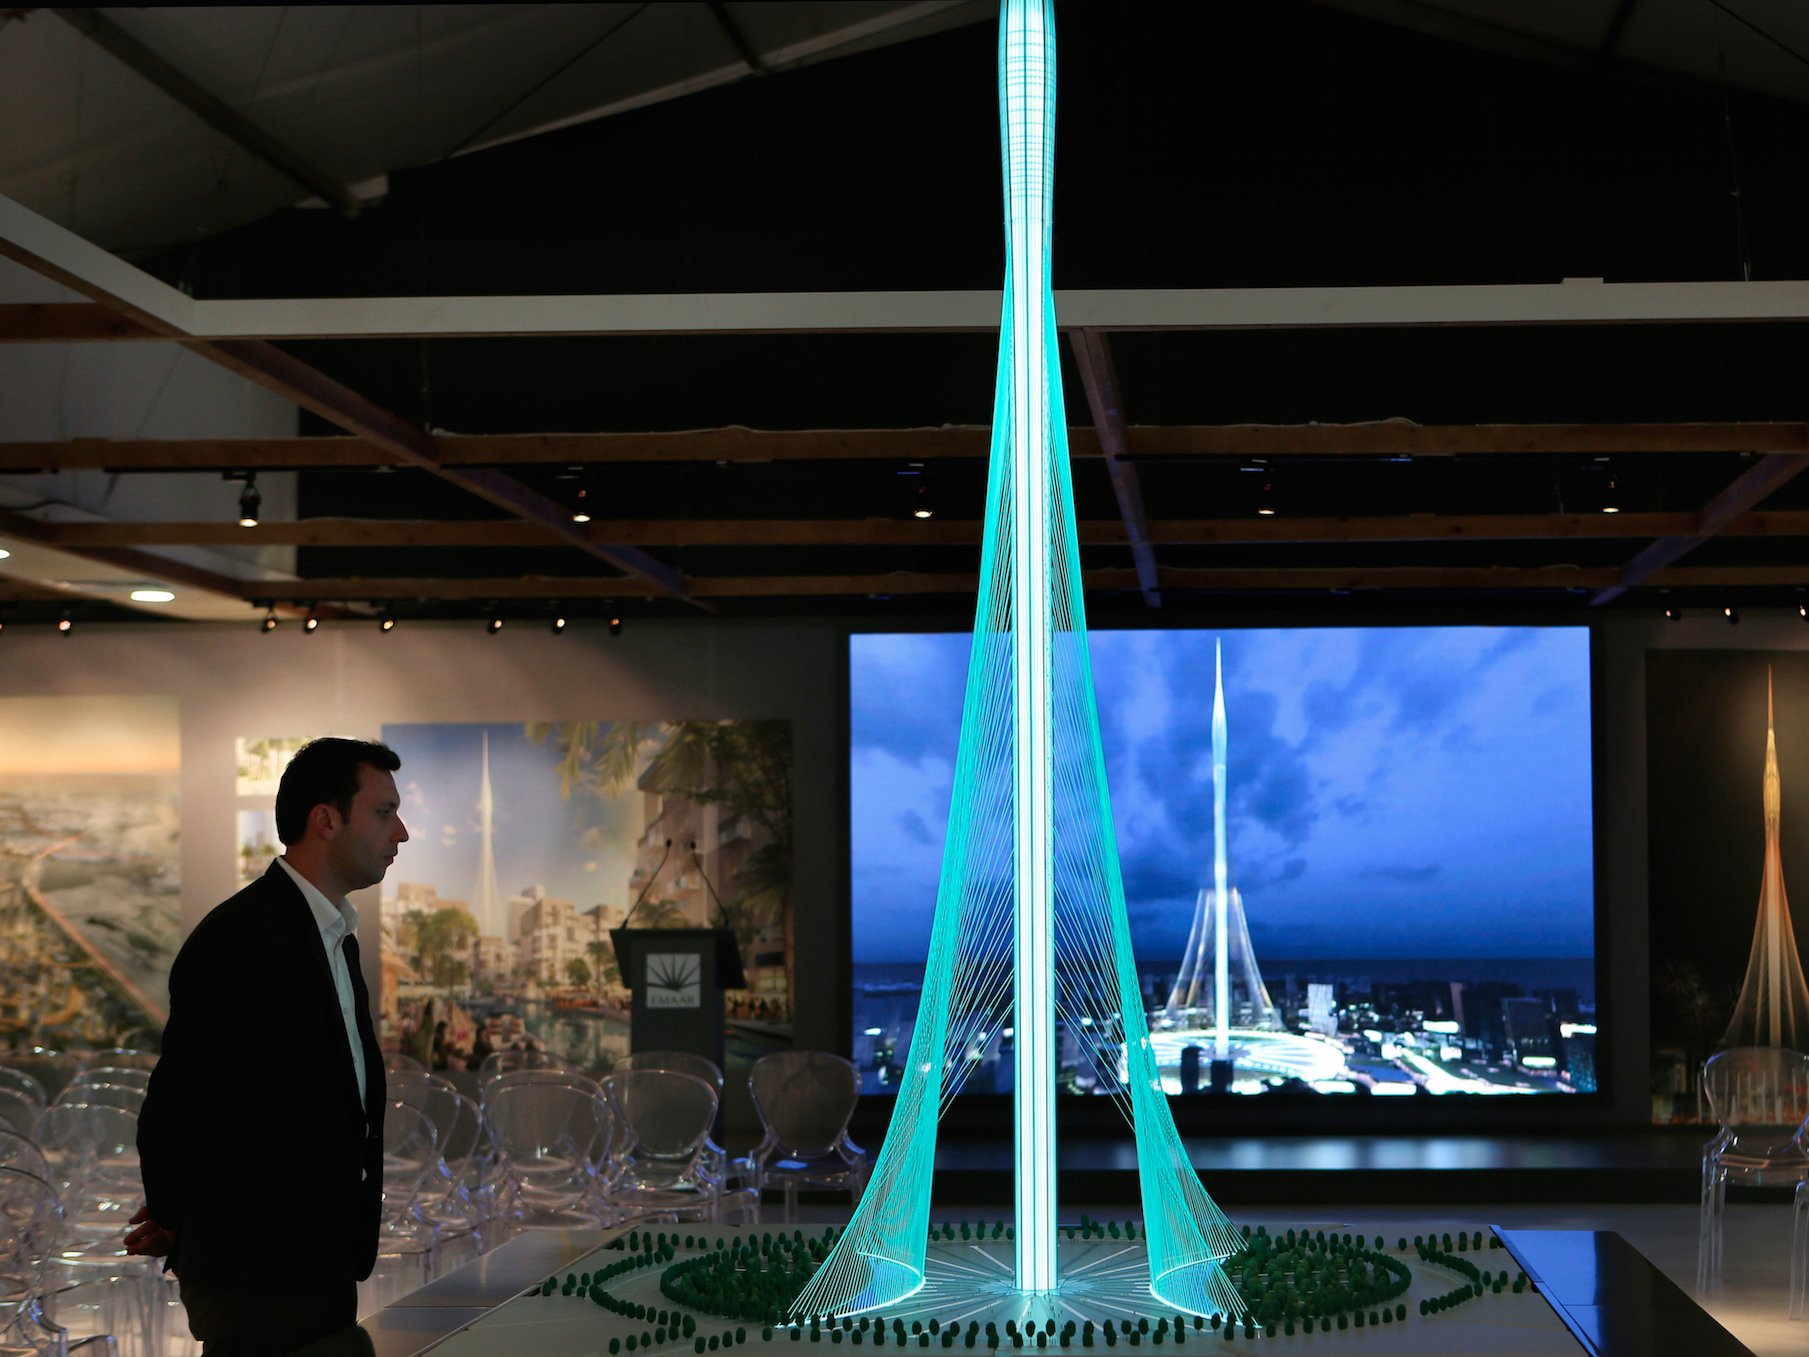 Dubai starts building the tallest tower in the world